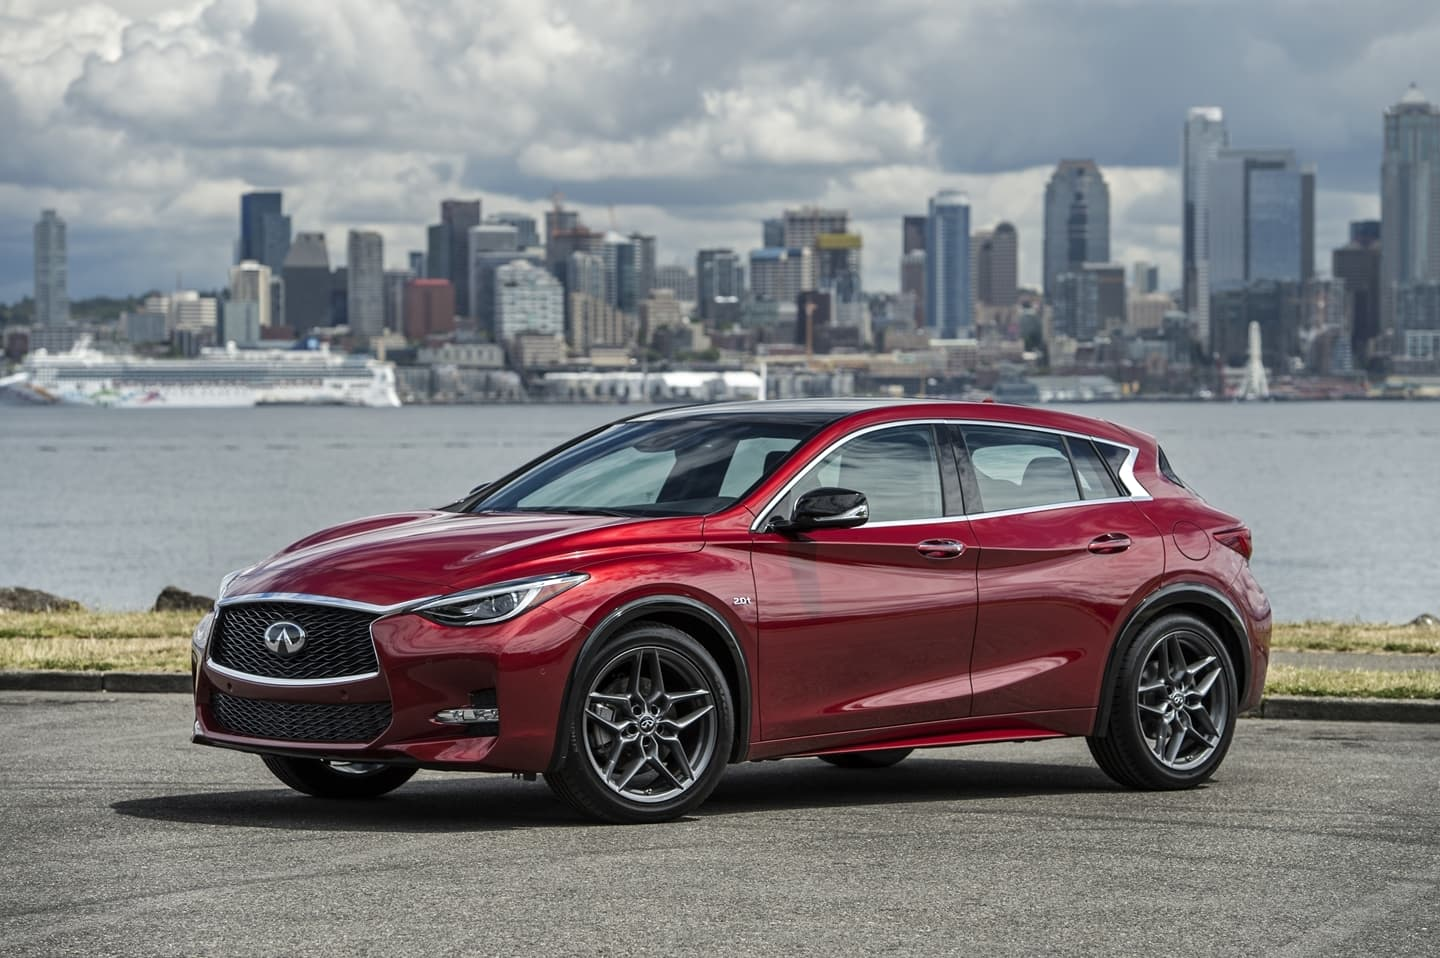 Infiniti Qx30 Wins Best In Class Award At Southern Automotive Me